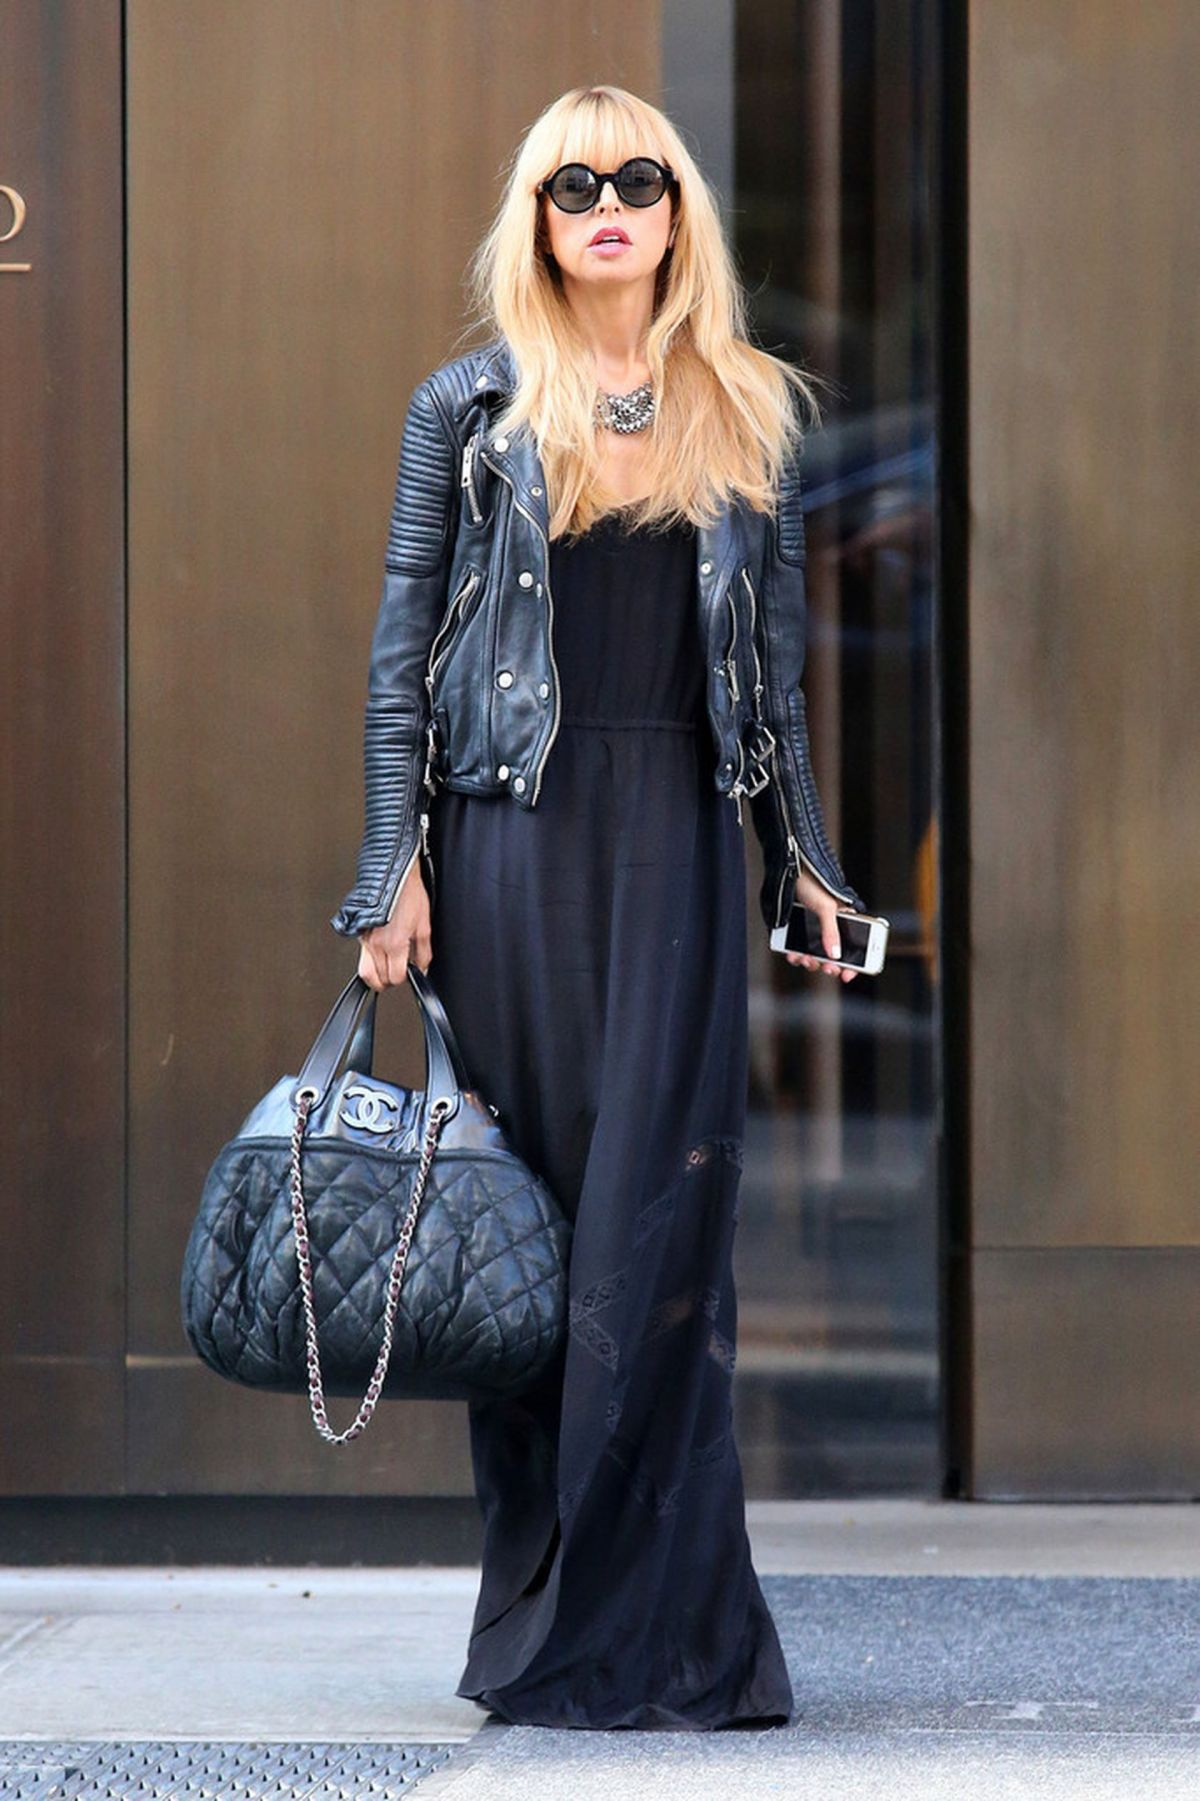 Rachel Zoe In Soho NYC